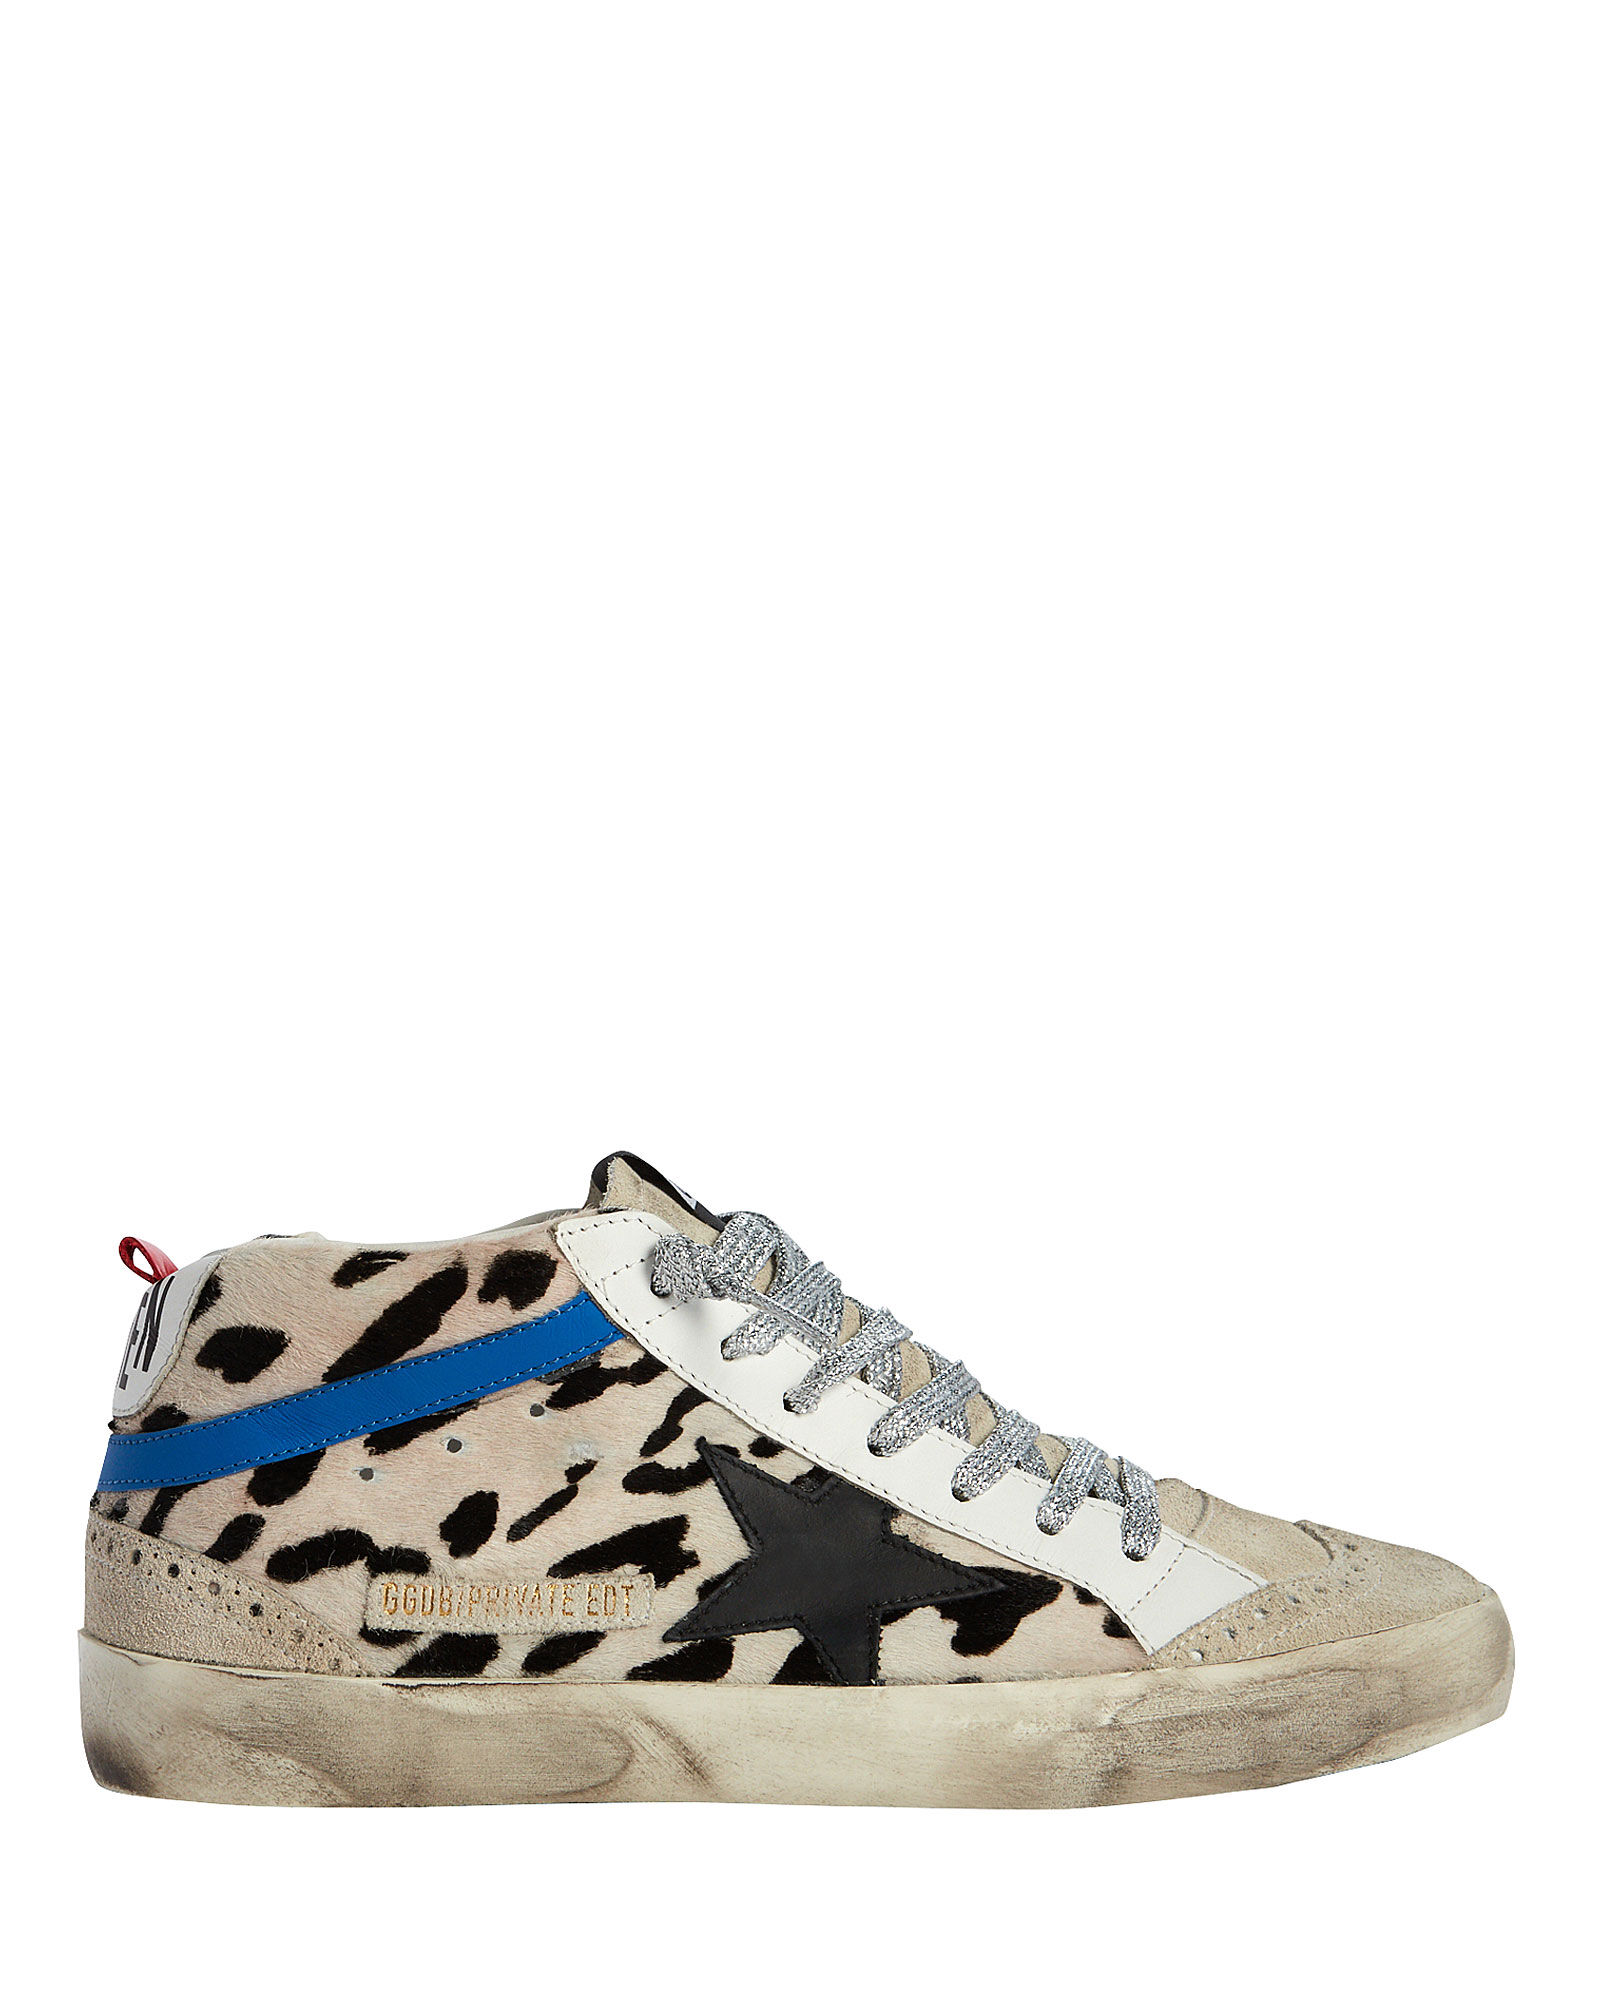 Mid Star Calf Hair Sneakers, GREY, hi-res